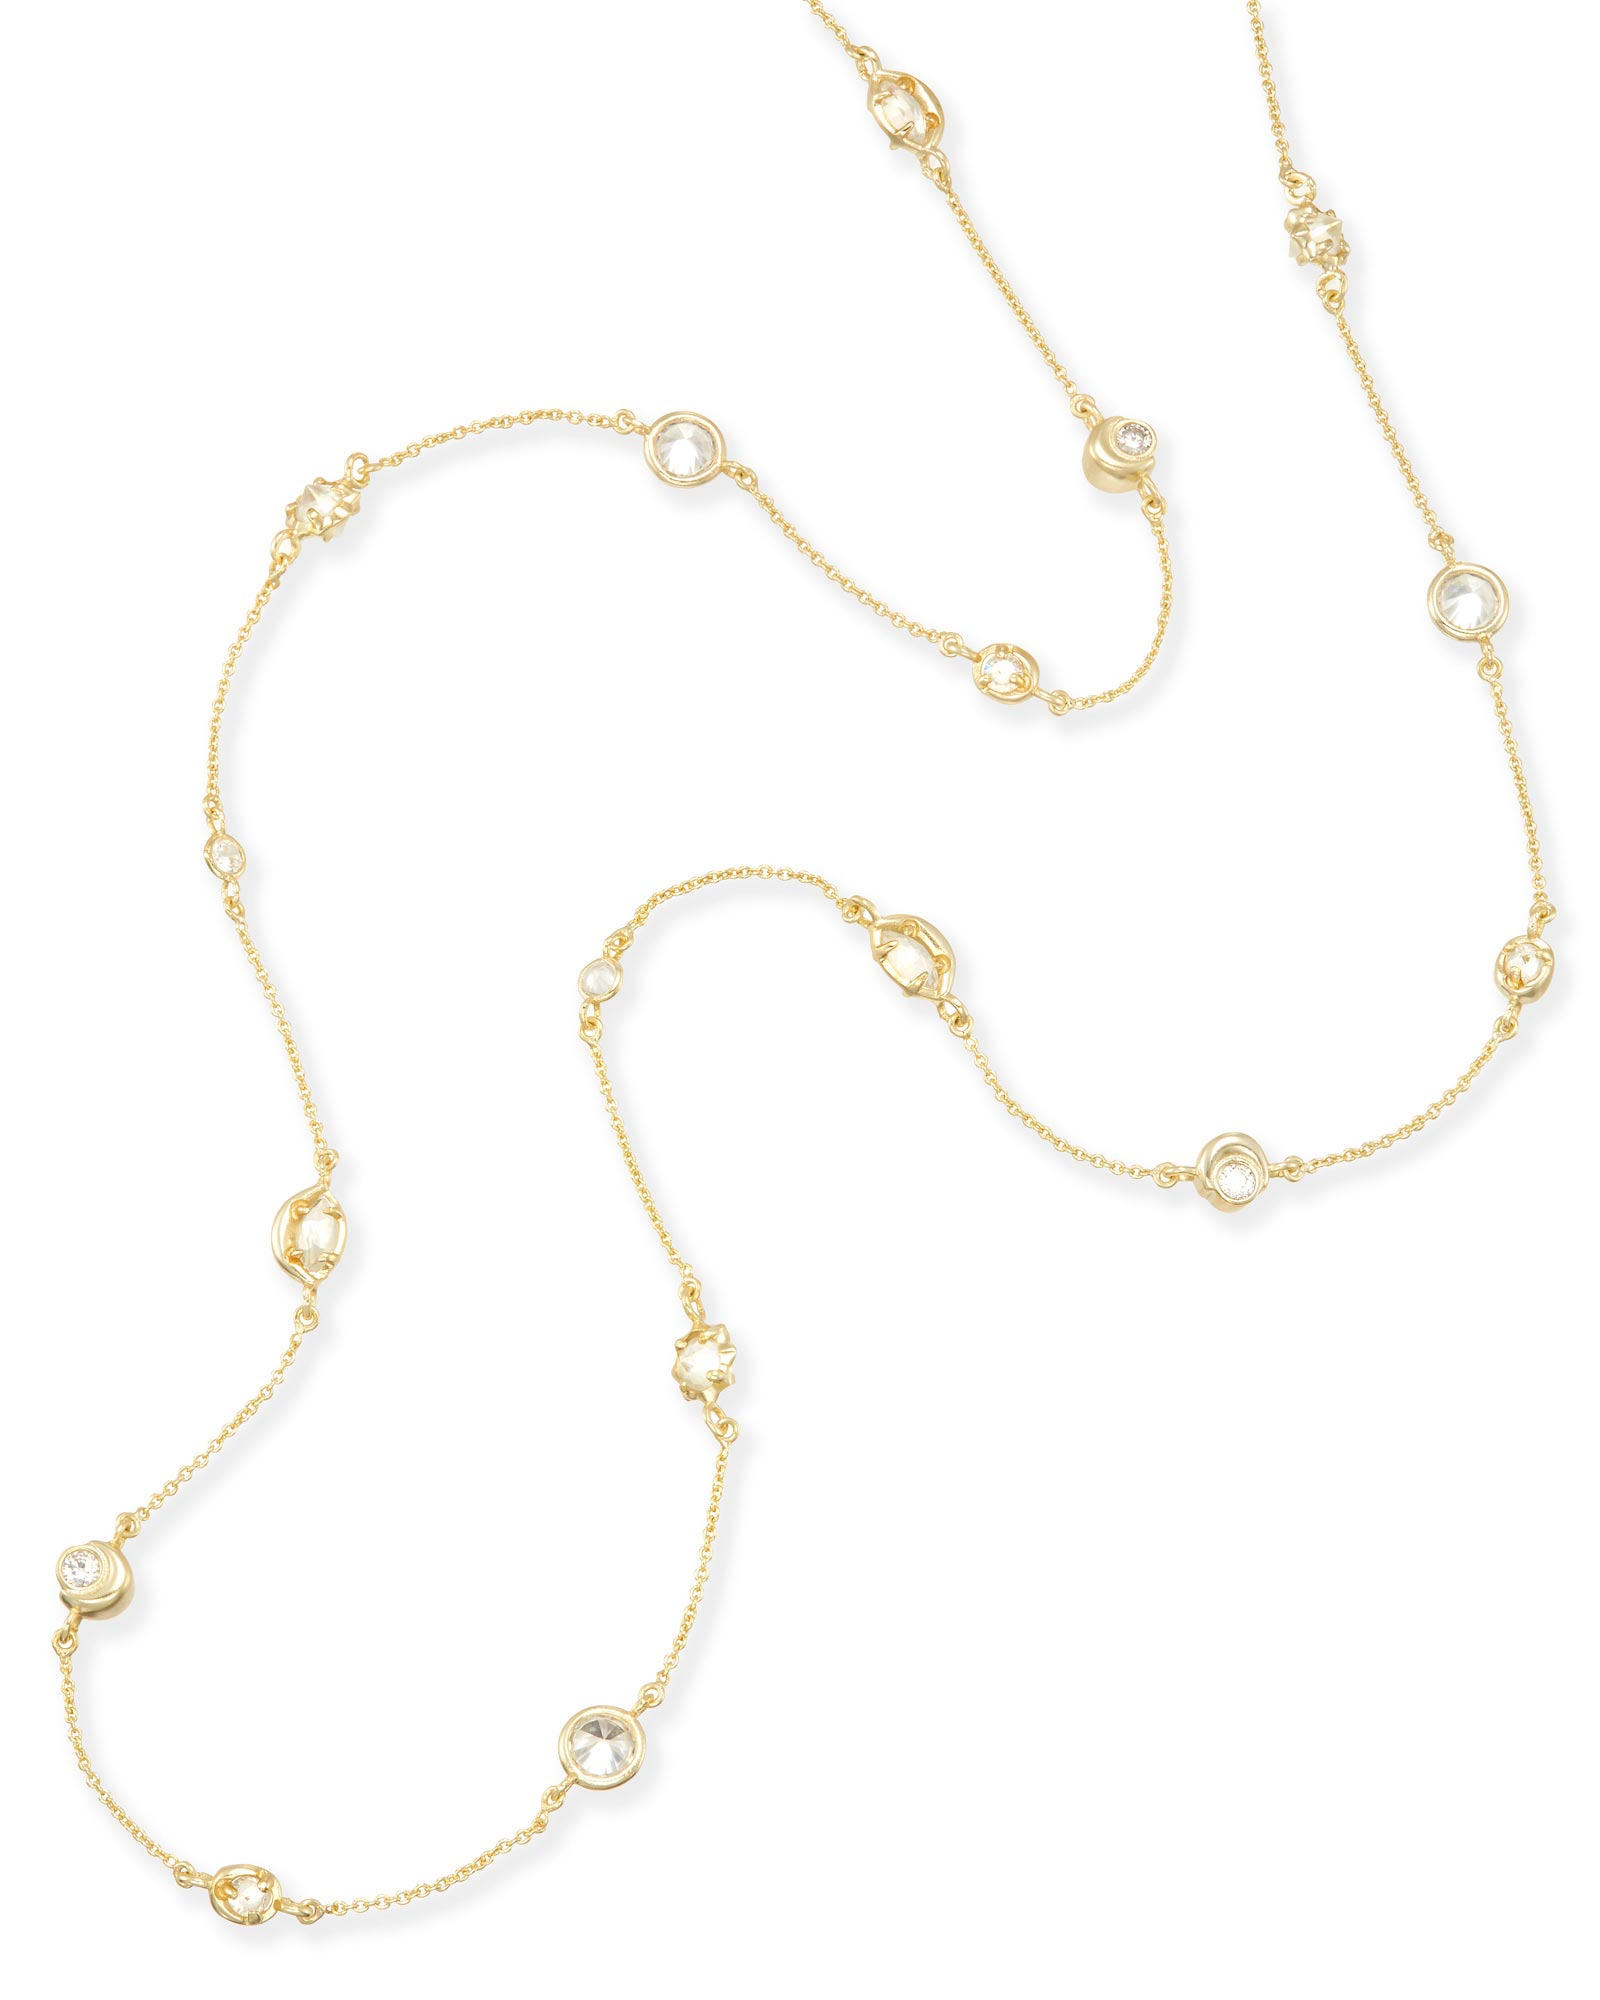 Augie Long Necklace in Gold